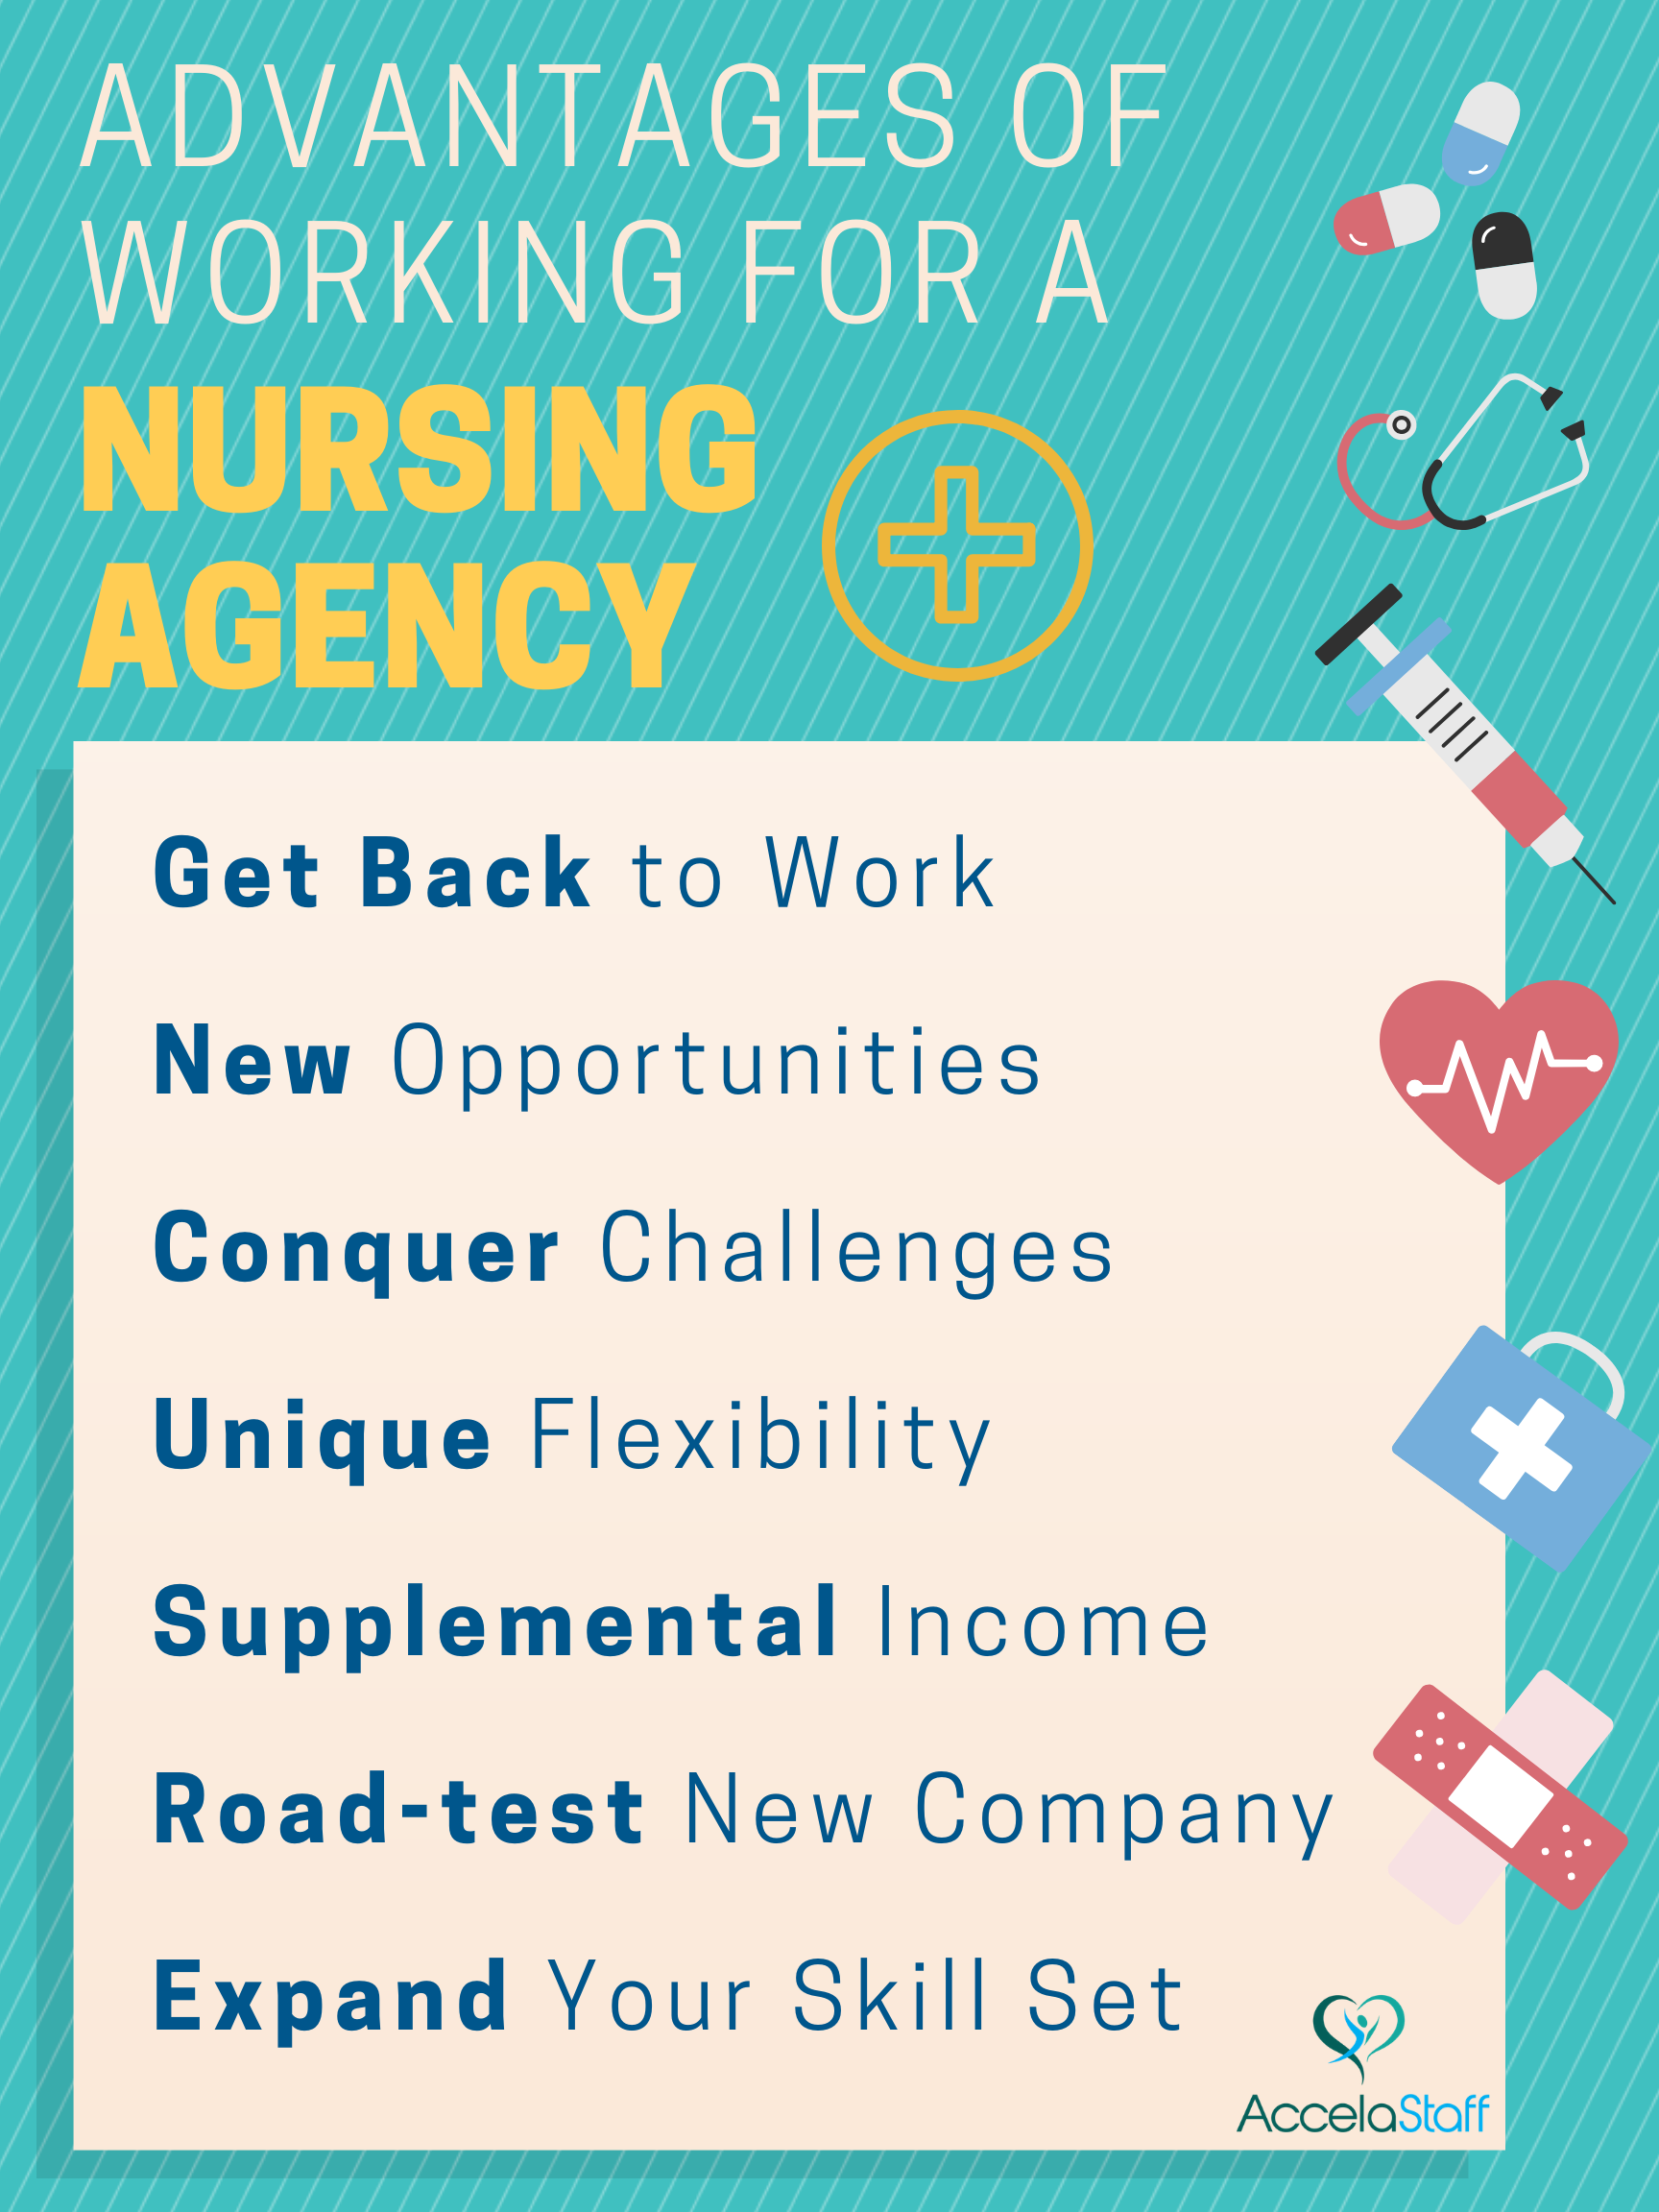 Don't just think of registering with a nursing agency as a